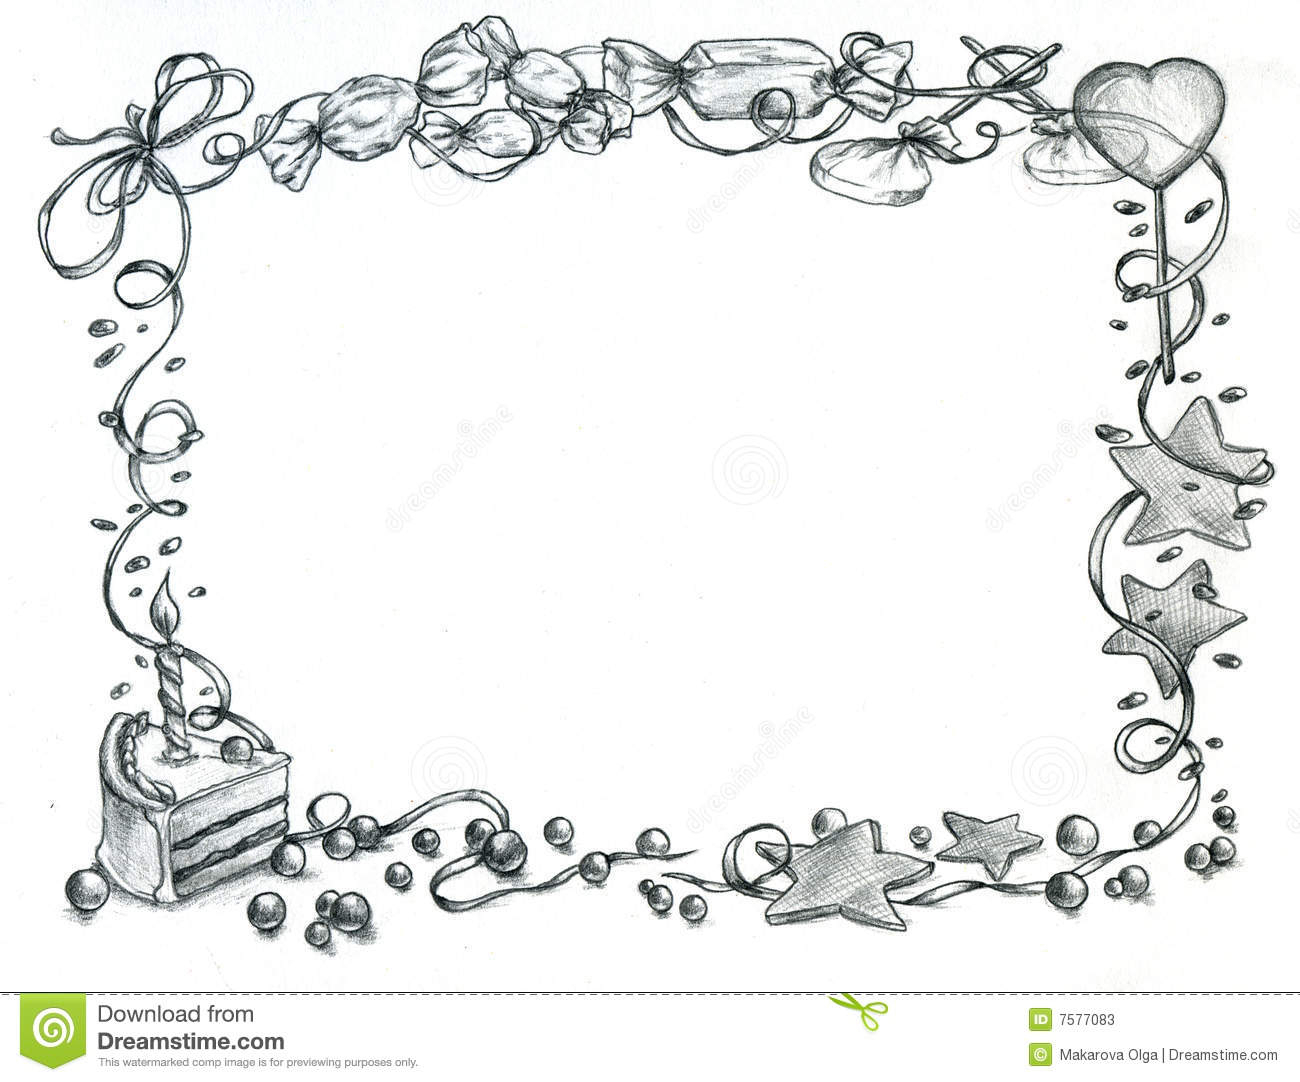 pencil drawing for birthday ; happy-birthday-pencil-drawing-happy-birthday-frame-stock-illustration-image-of-light-7577083